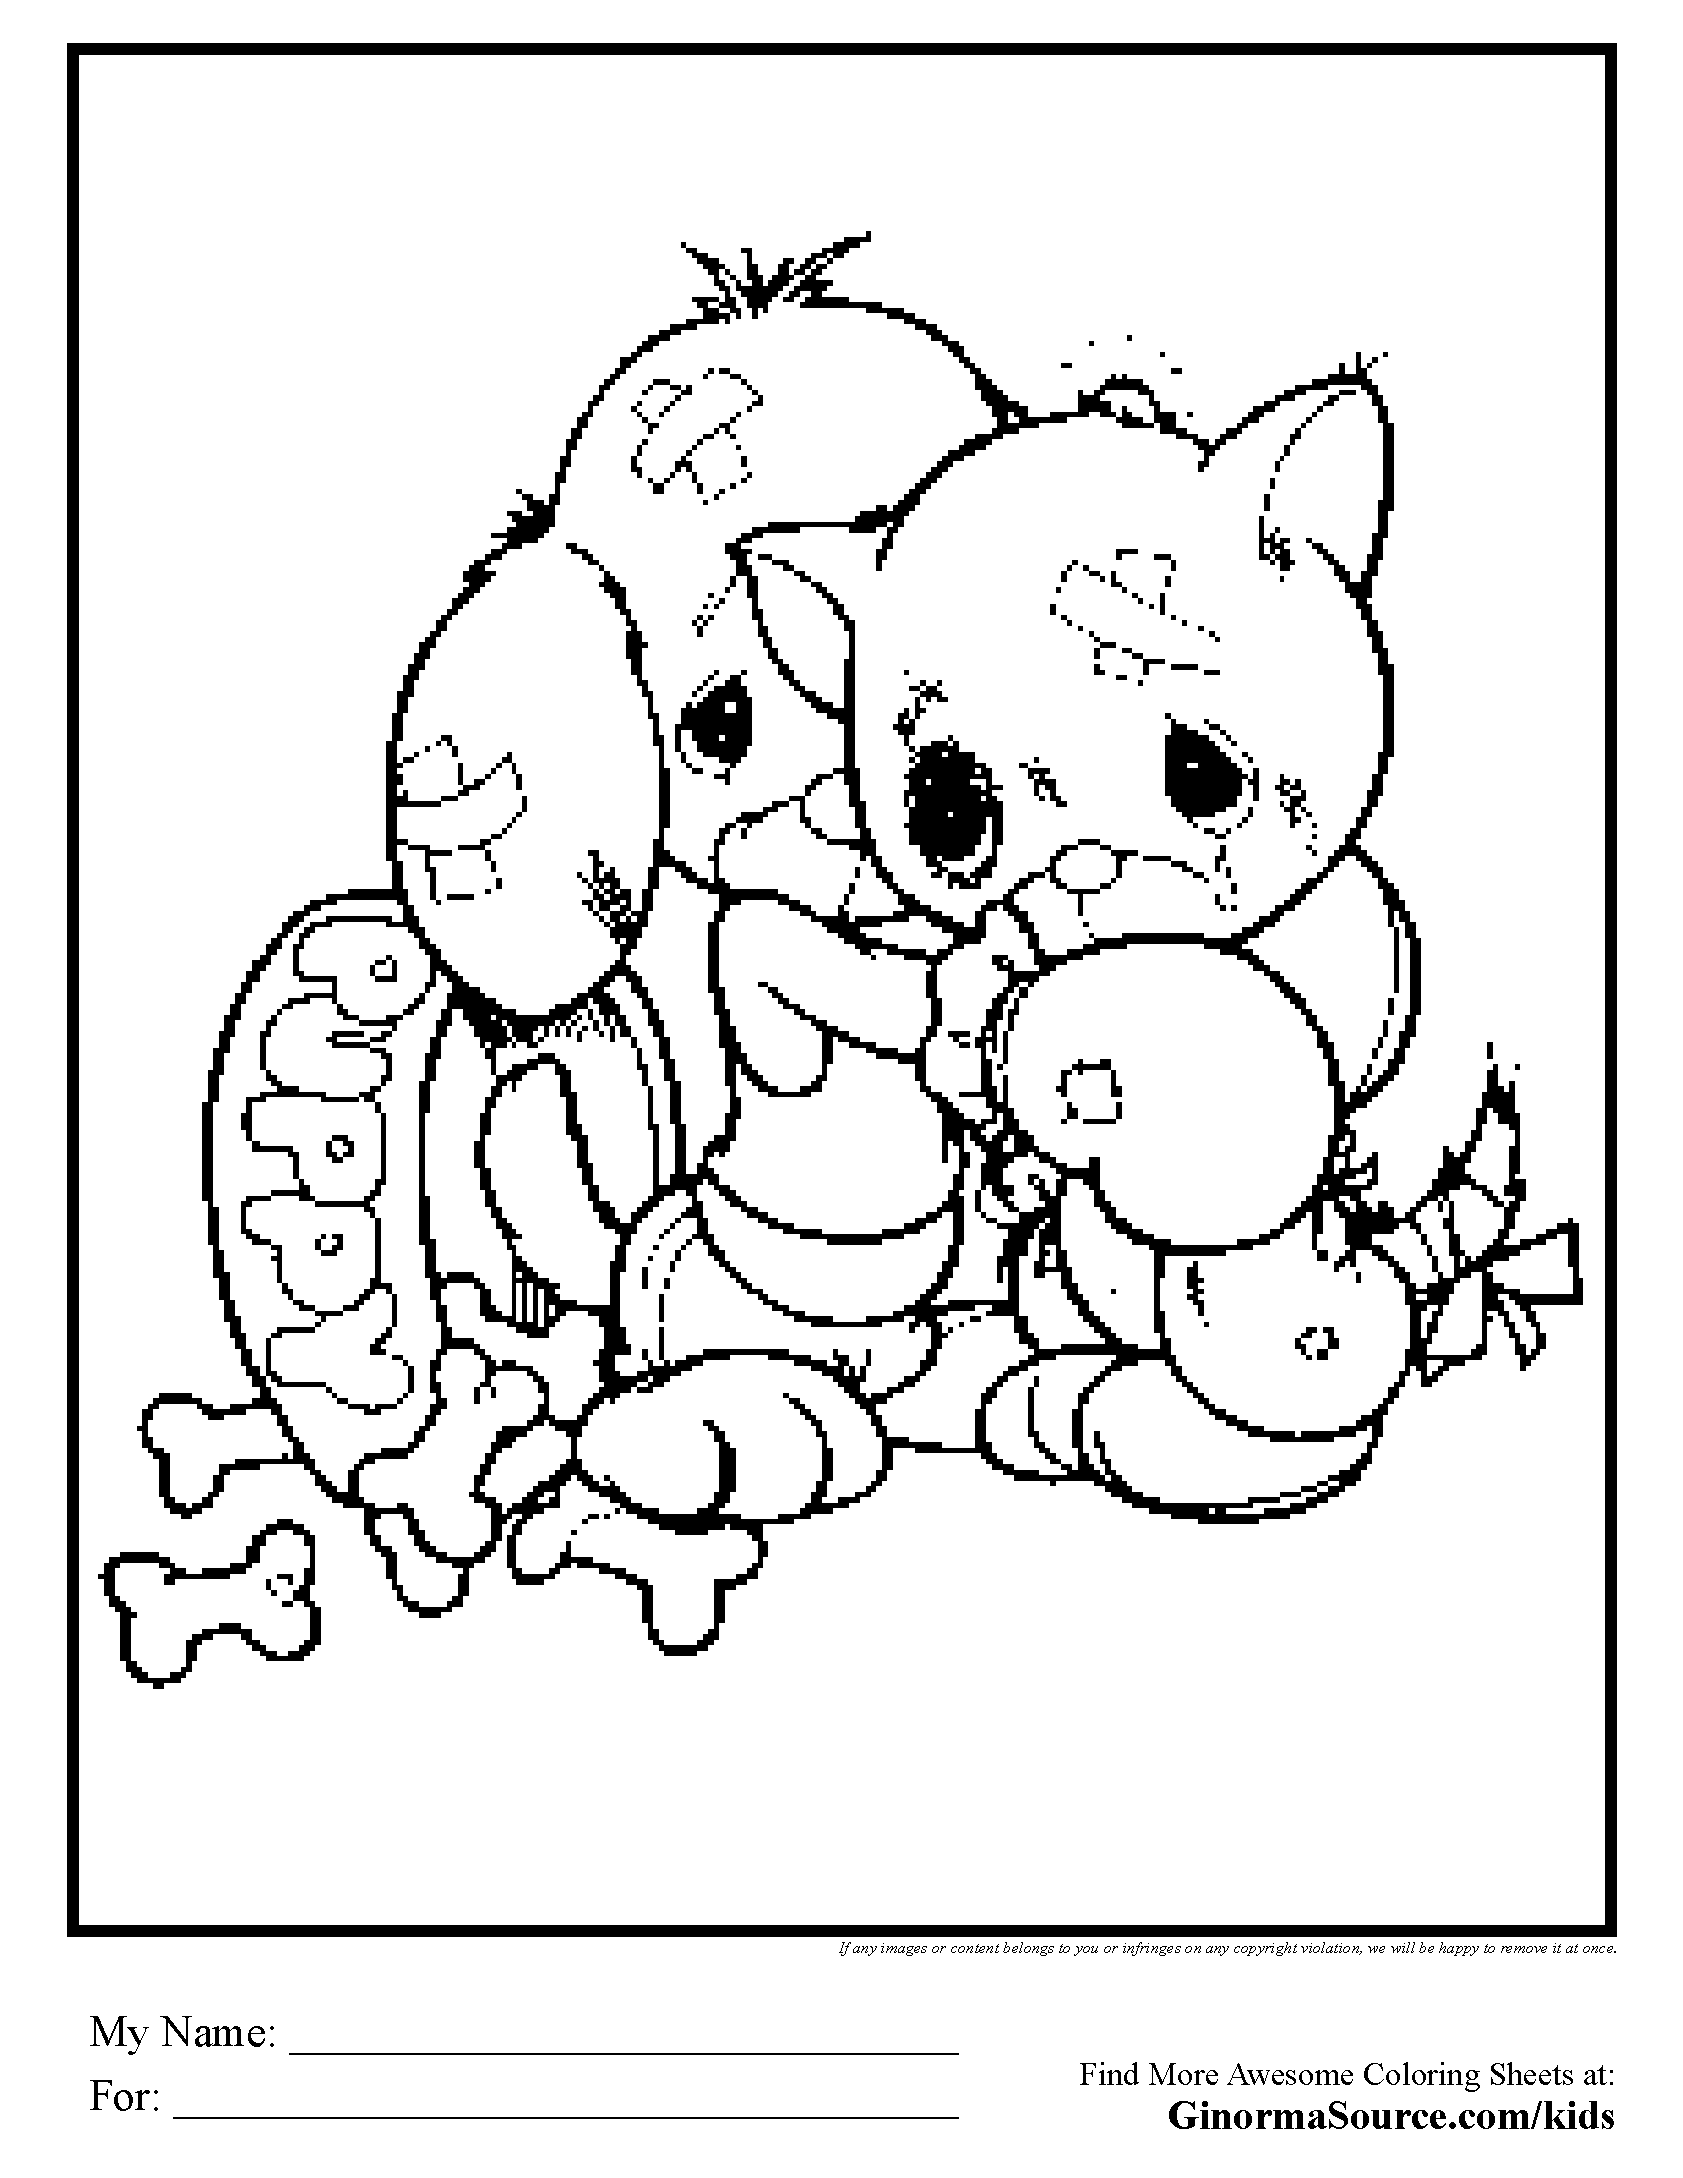 A Cat Hard Coloring Page Adult Printable Coloring Pages Hard